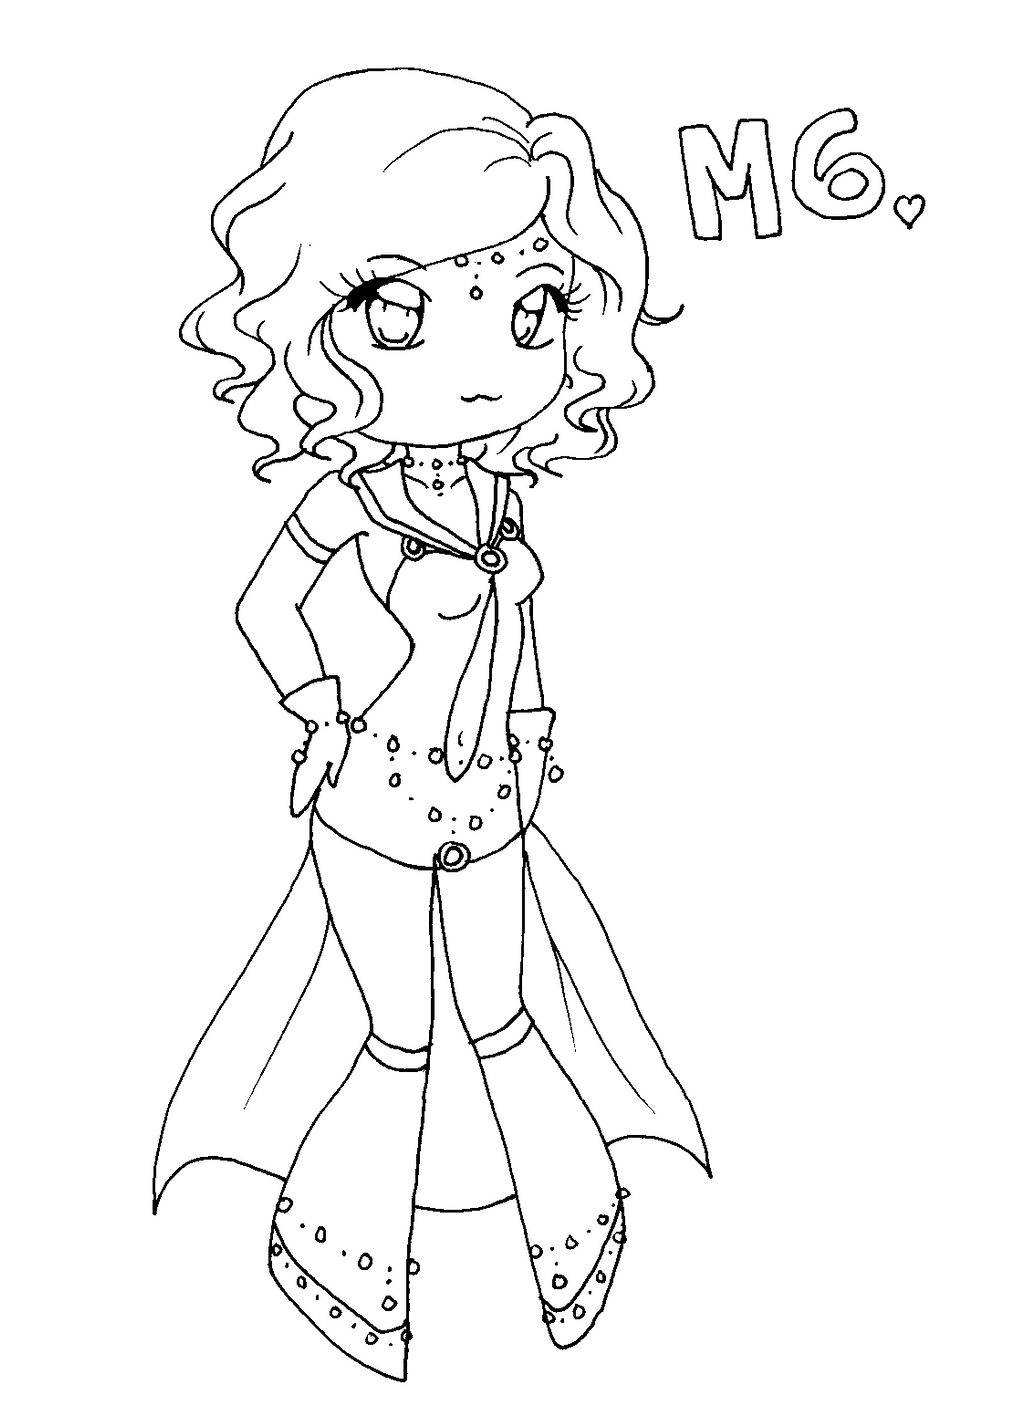 anime chibi coloring pages - chibi messier 6 coloring page by pandanalove on deviantart